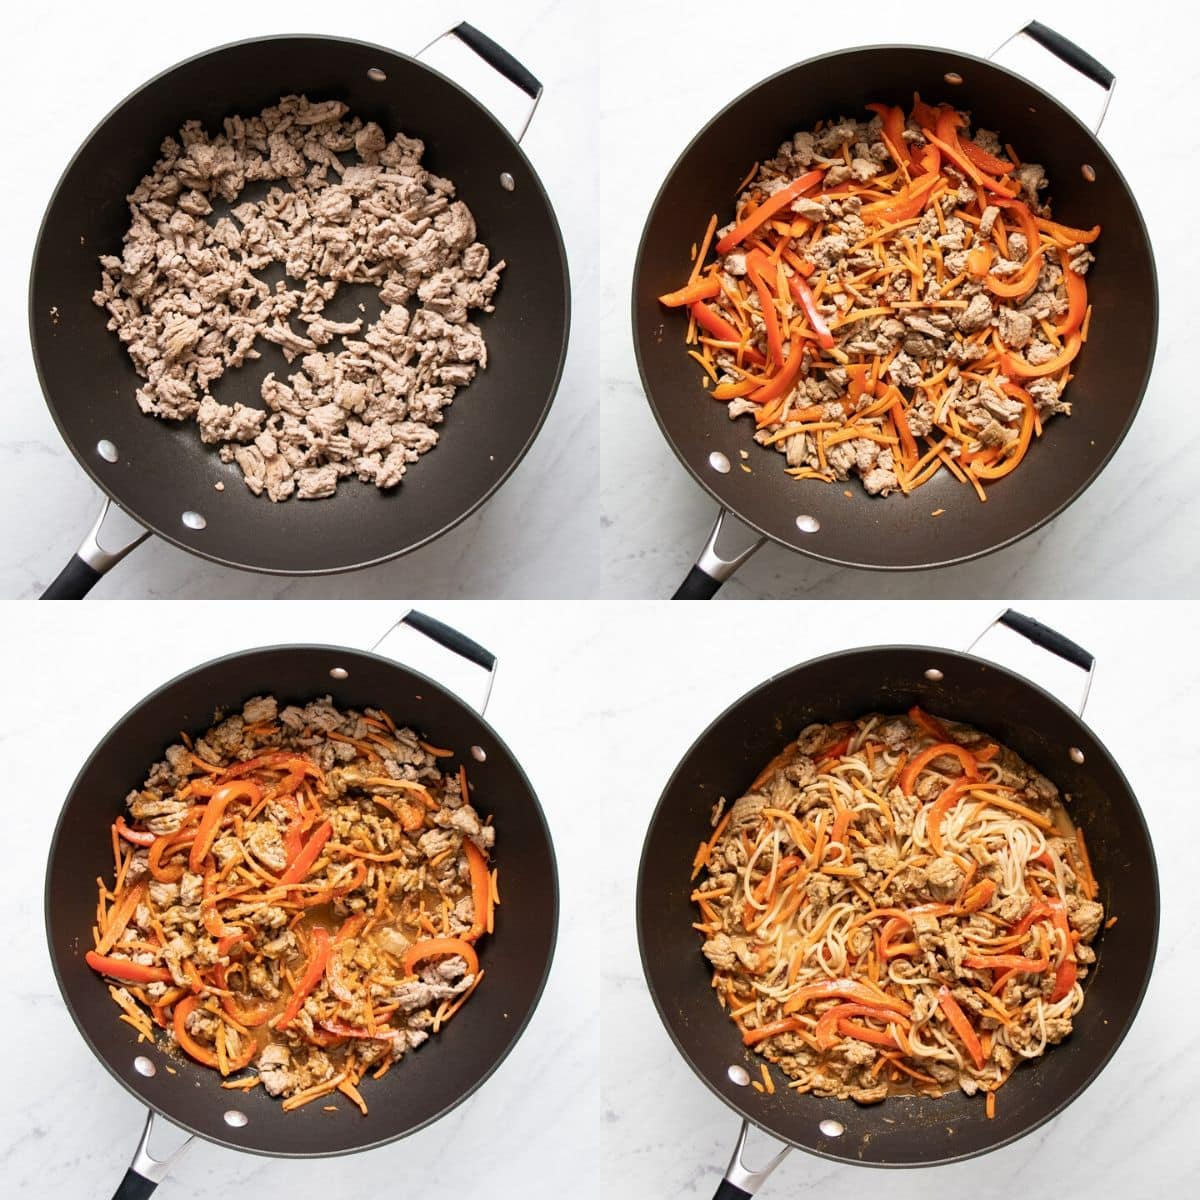 A collage of four images depicting ground turkey being browned, then the veggies (red bell pepper and carrots) being added and sauteed, then the sauce being added, and finally the cooked spaghetti being added.